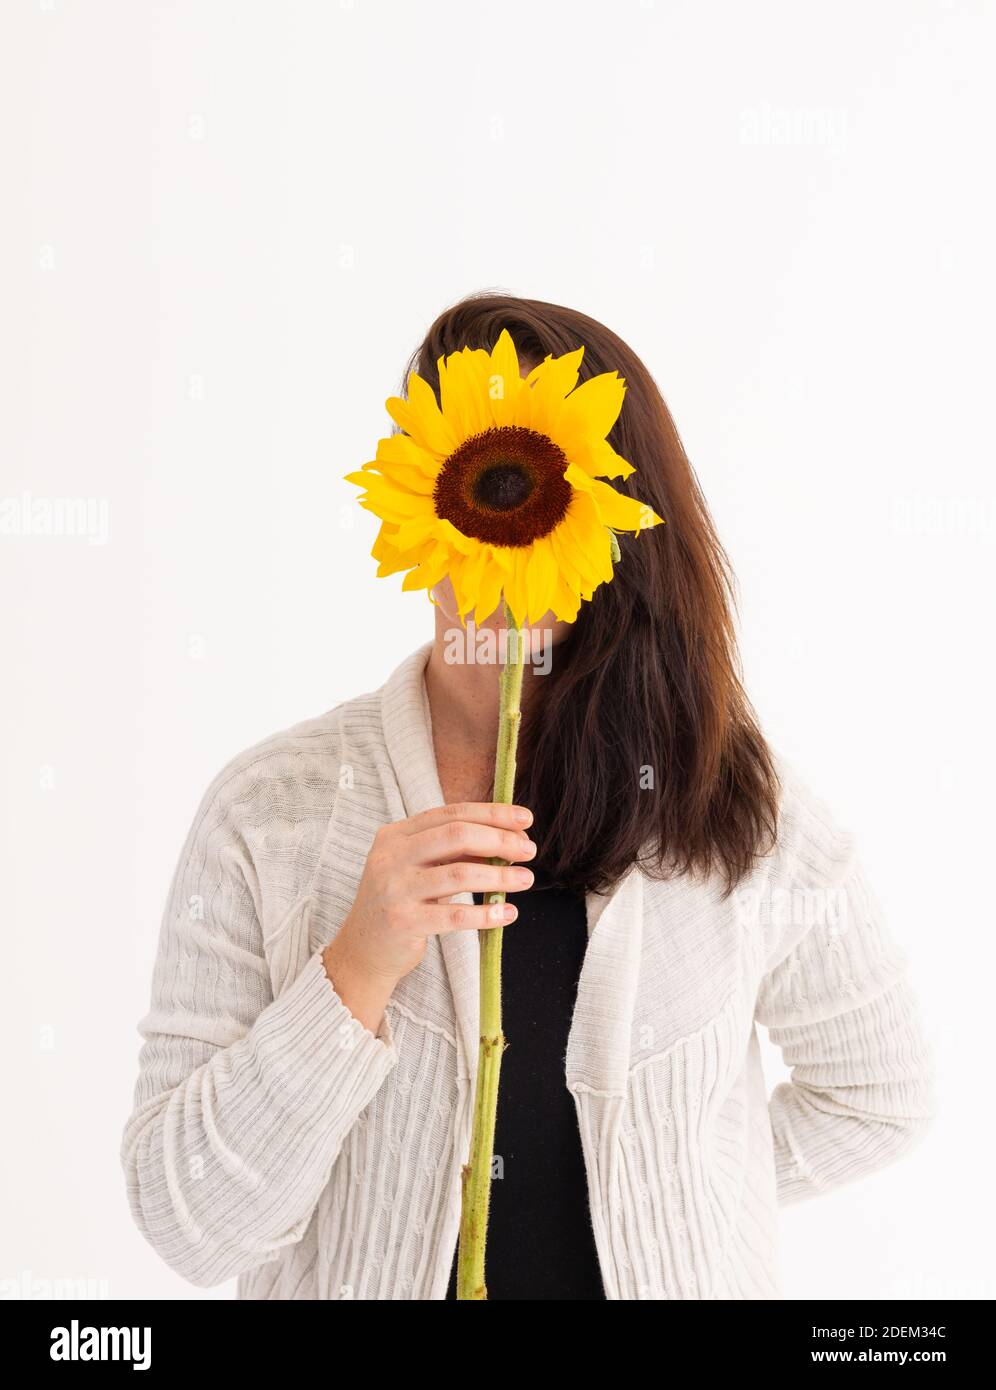 Sunflower White Background High Resolution Stock Photography And Images Alamy